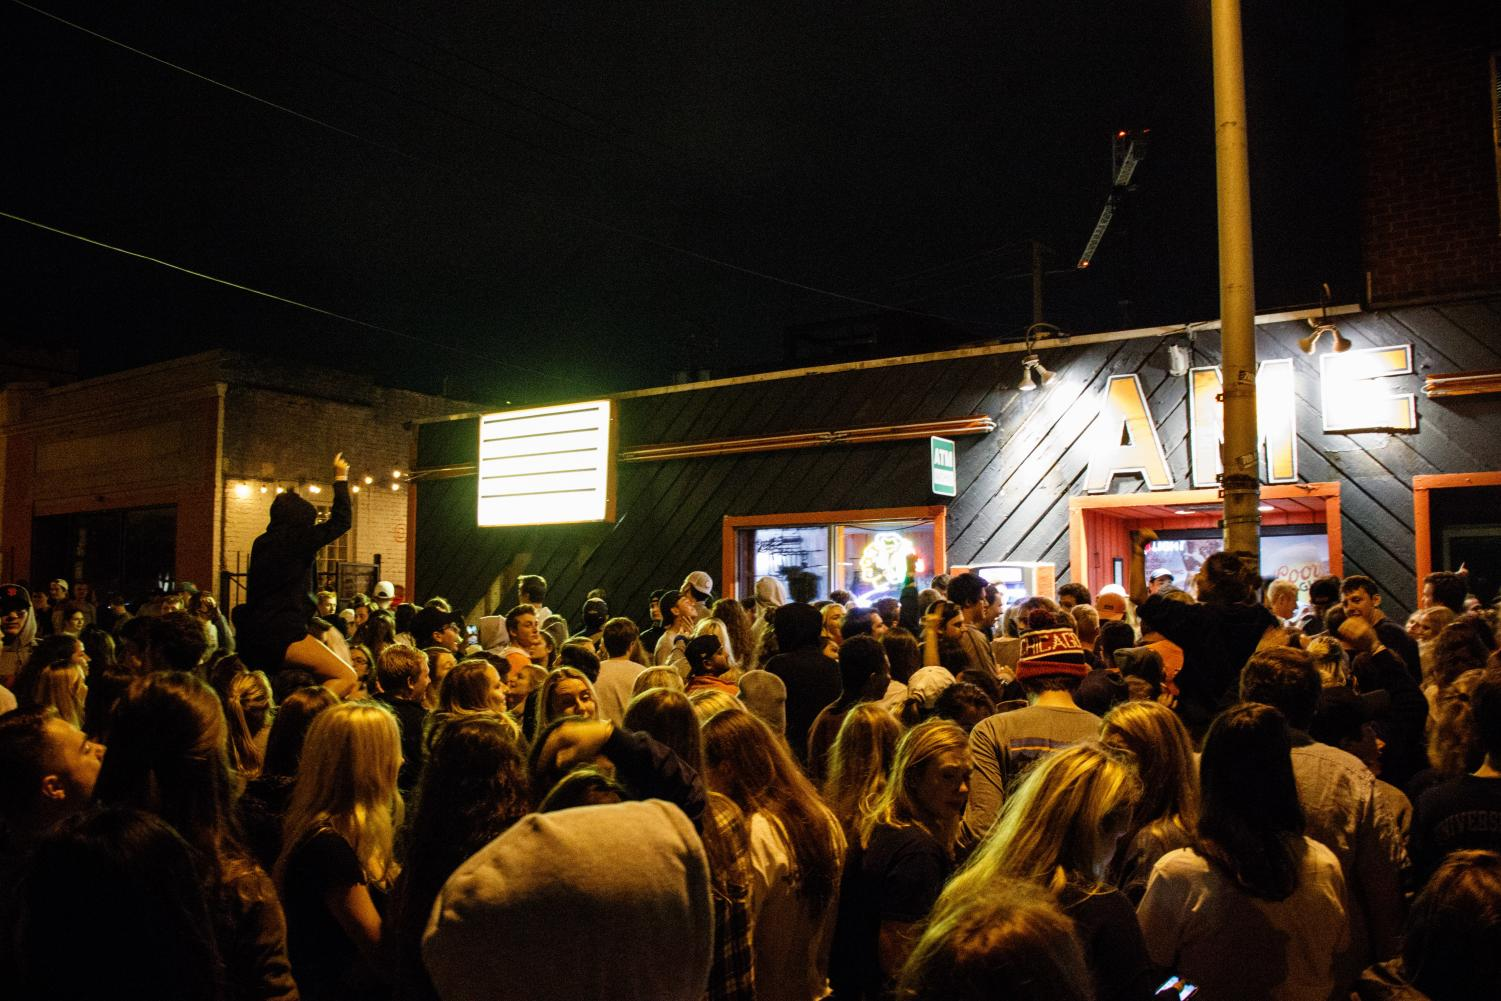 Patrons of KAM's gather outside the historic bar during its final hours on Oct. 20. The last call at KAM's was one of the top five moments of the semester, as selected by The Daily Illini staff.